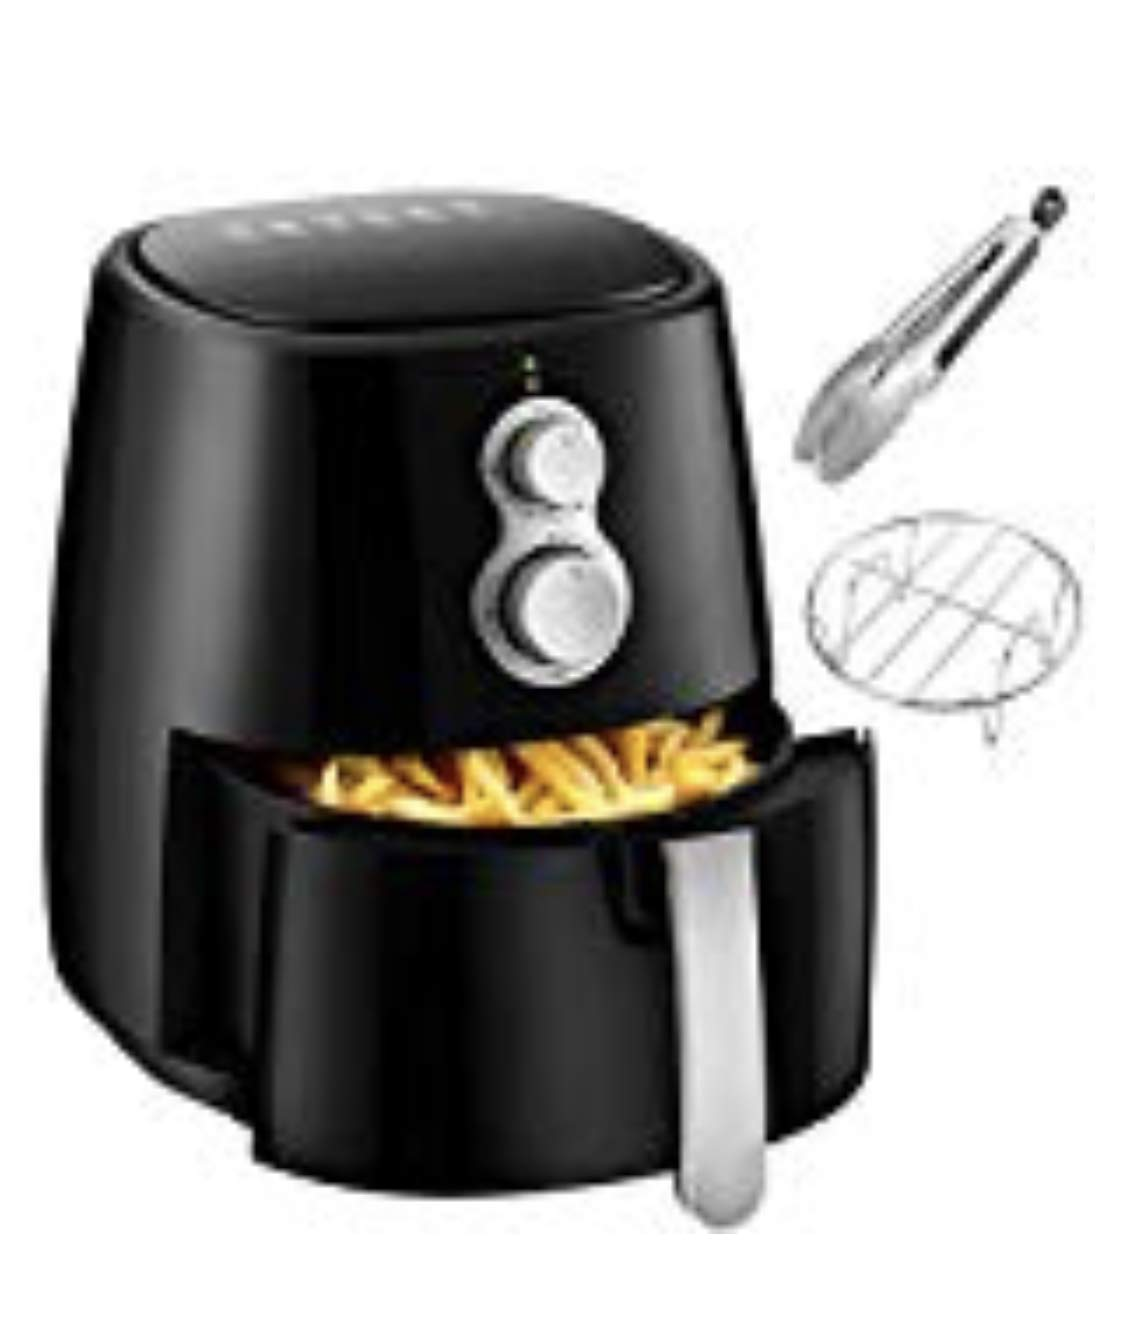 Air Fryer, 4.2QT Air Fryers w/Accessories Cookbook, Grill Rack and Tongs Black